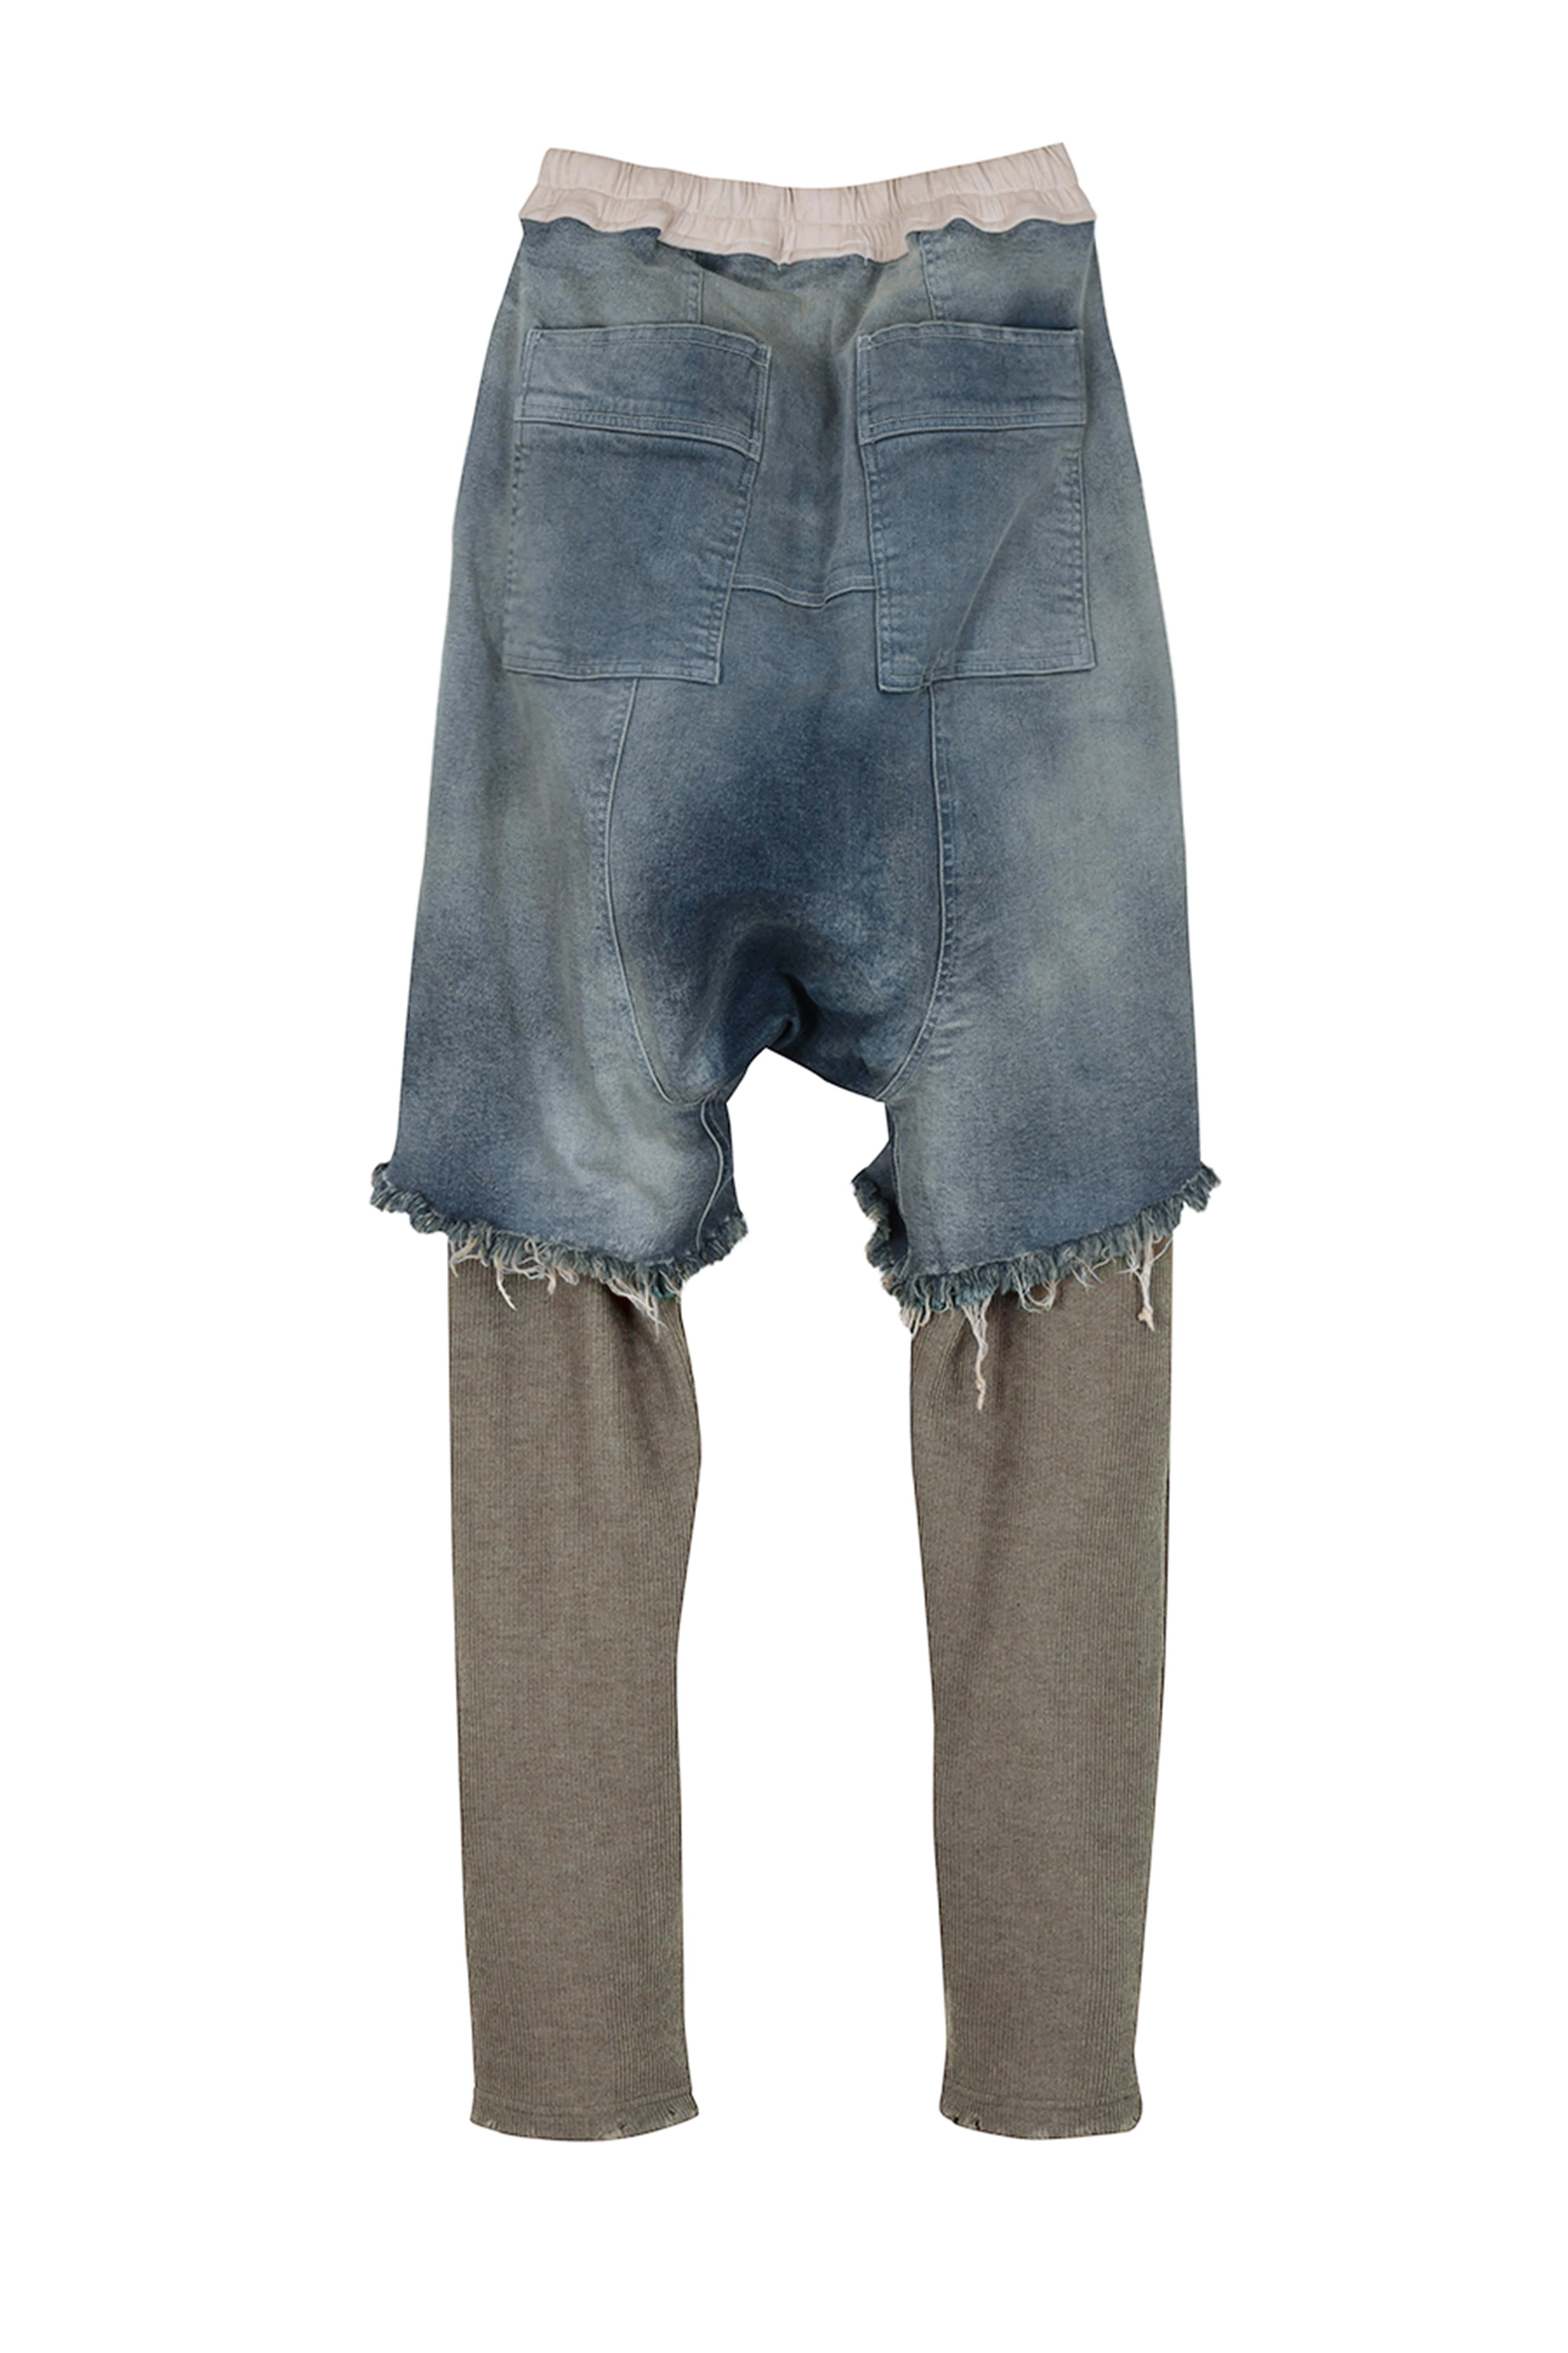 Docking Denim Shorts with Knitted Pants